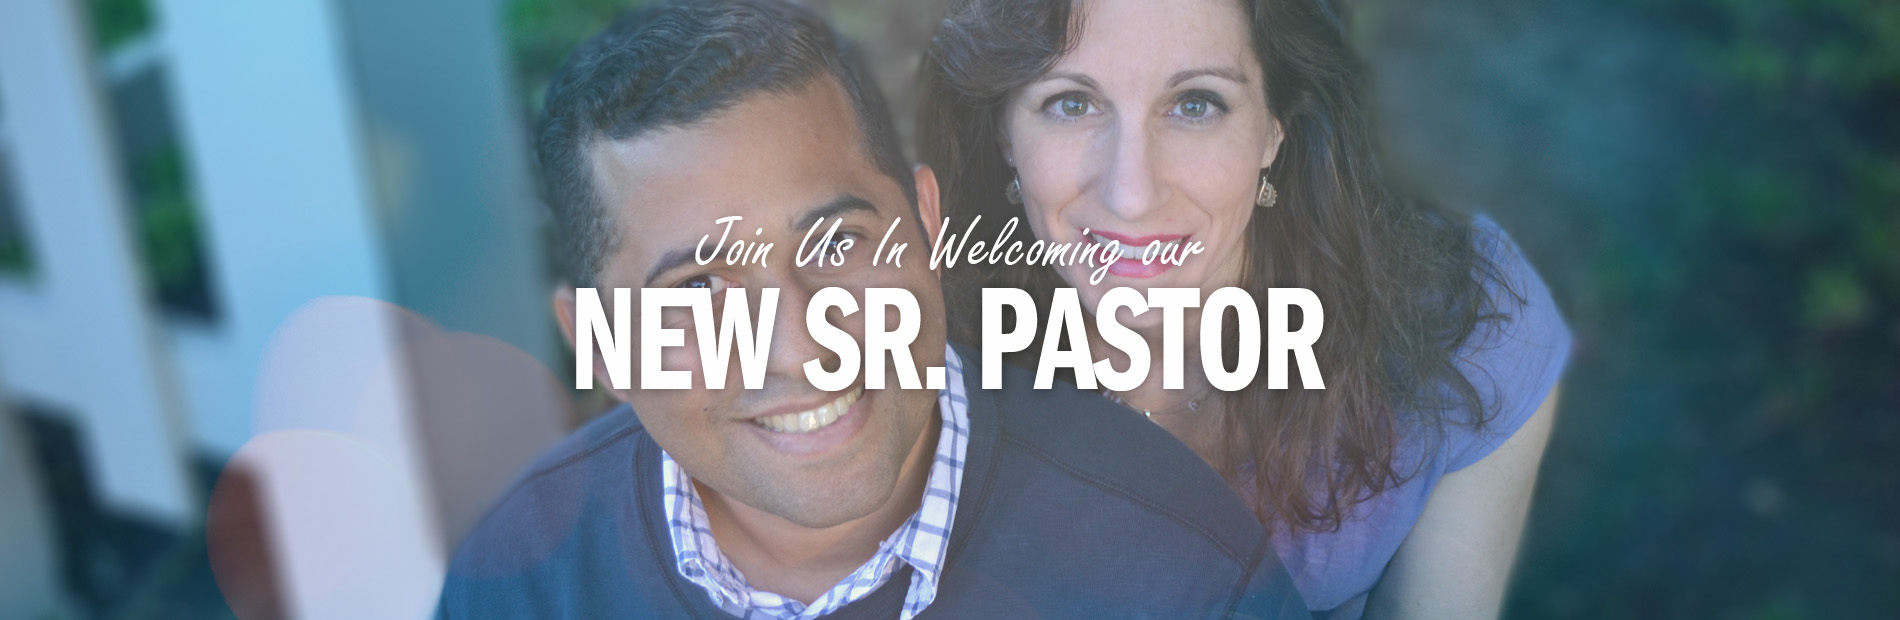 Join Us In Welcoming Our New Sr. Pastor